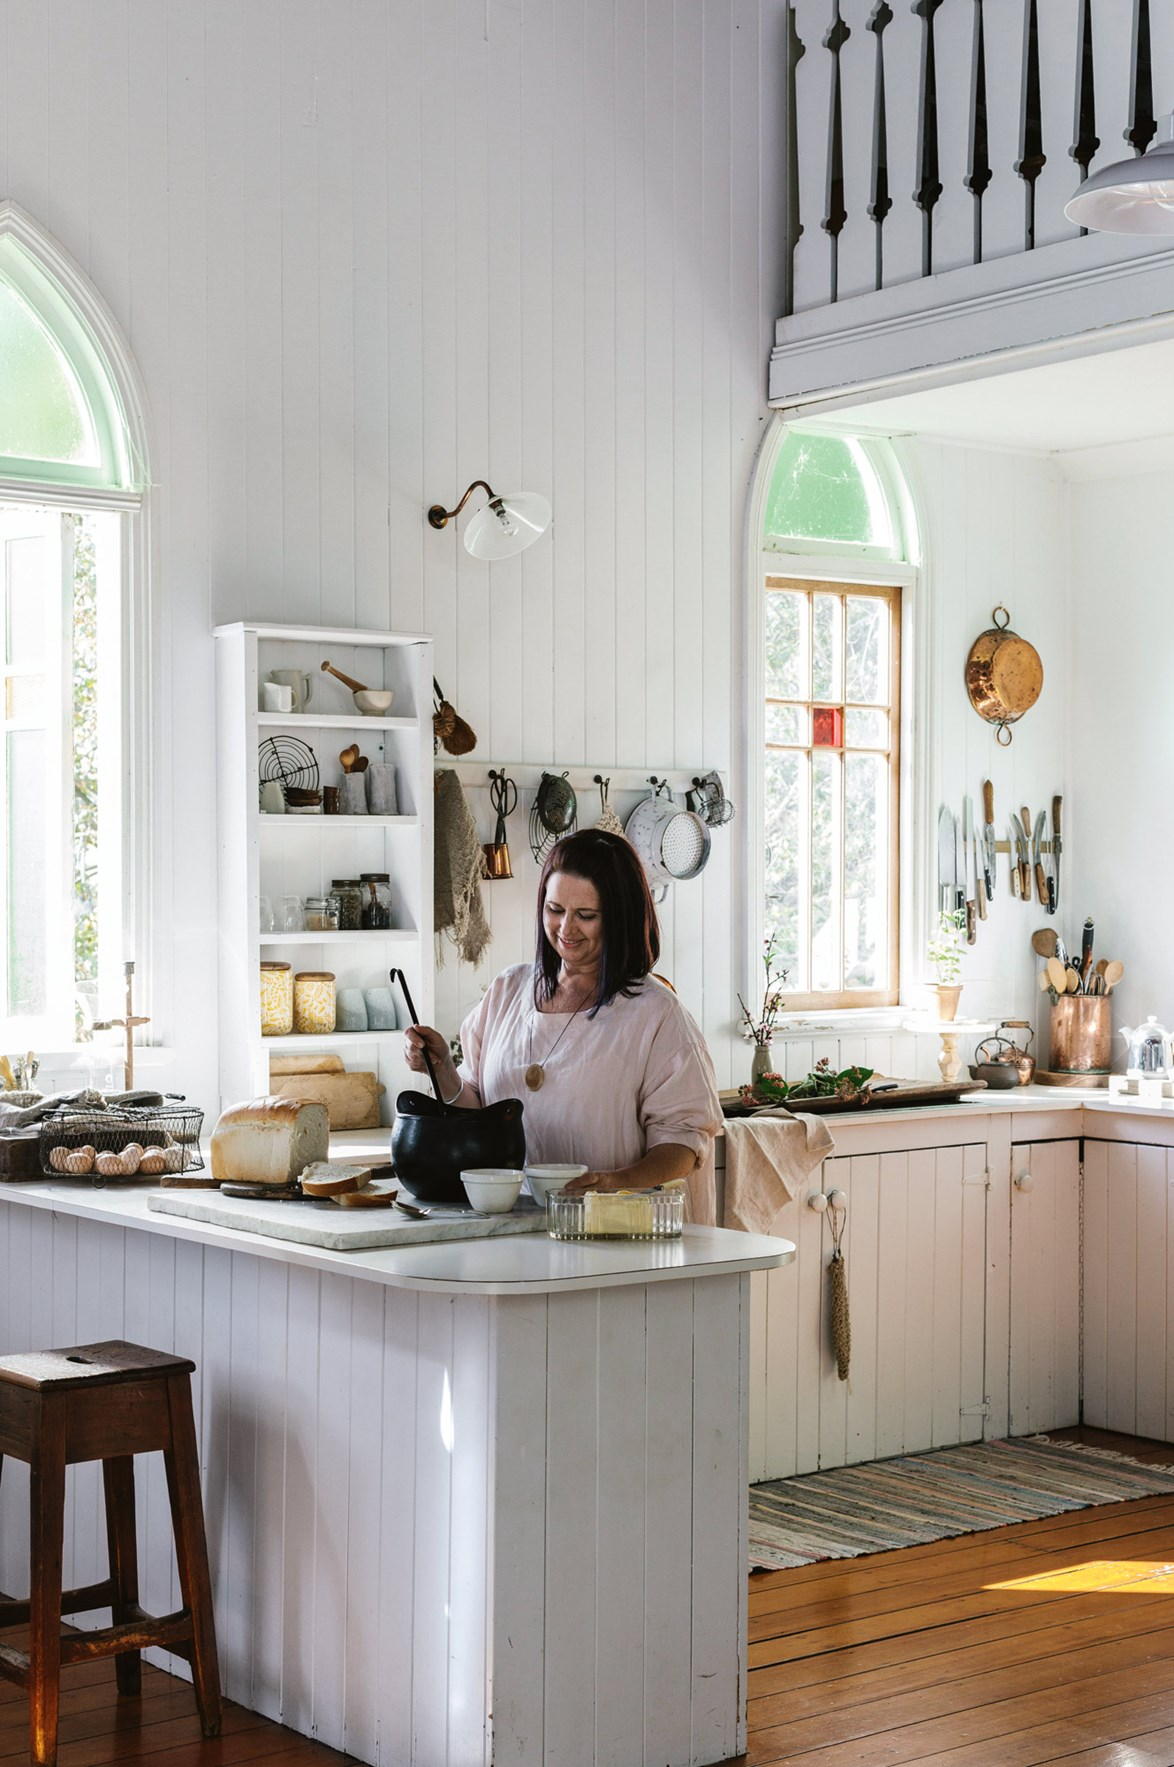 "Although living in [restored old church](https://www.homestolove.com.au/restored-qld-church-full-of-divine-treasures-13984|target=""_blank"") is cool enough on its own, it's actually the lifestyle change that the Carr family enjoy most about their home in Boonah, Queensland. Escaping the hustle and bustle of city life has proved rewarding for the whole family: Cheryl started up her own homewares business while her sons enjoy a free-range upbringing. Her husband Mitch says, ""It's been great for the boys growing up to have the space and it's a safe environment for young men to hang out and socialise."" *Photo: Marnie Hawson*"